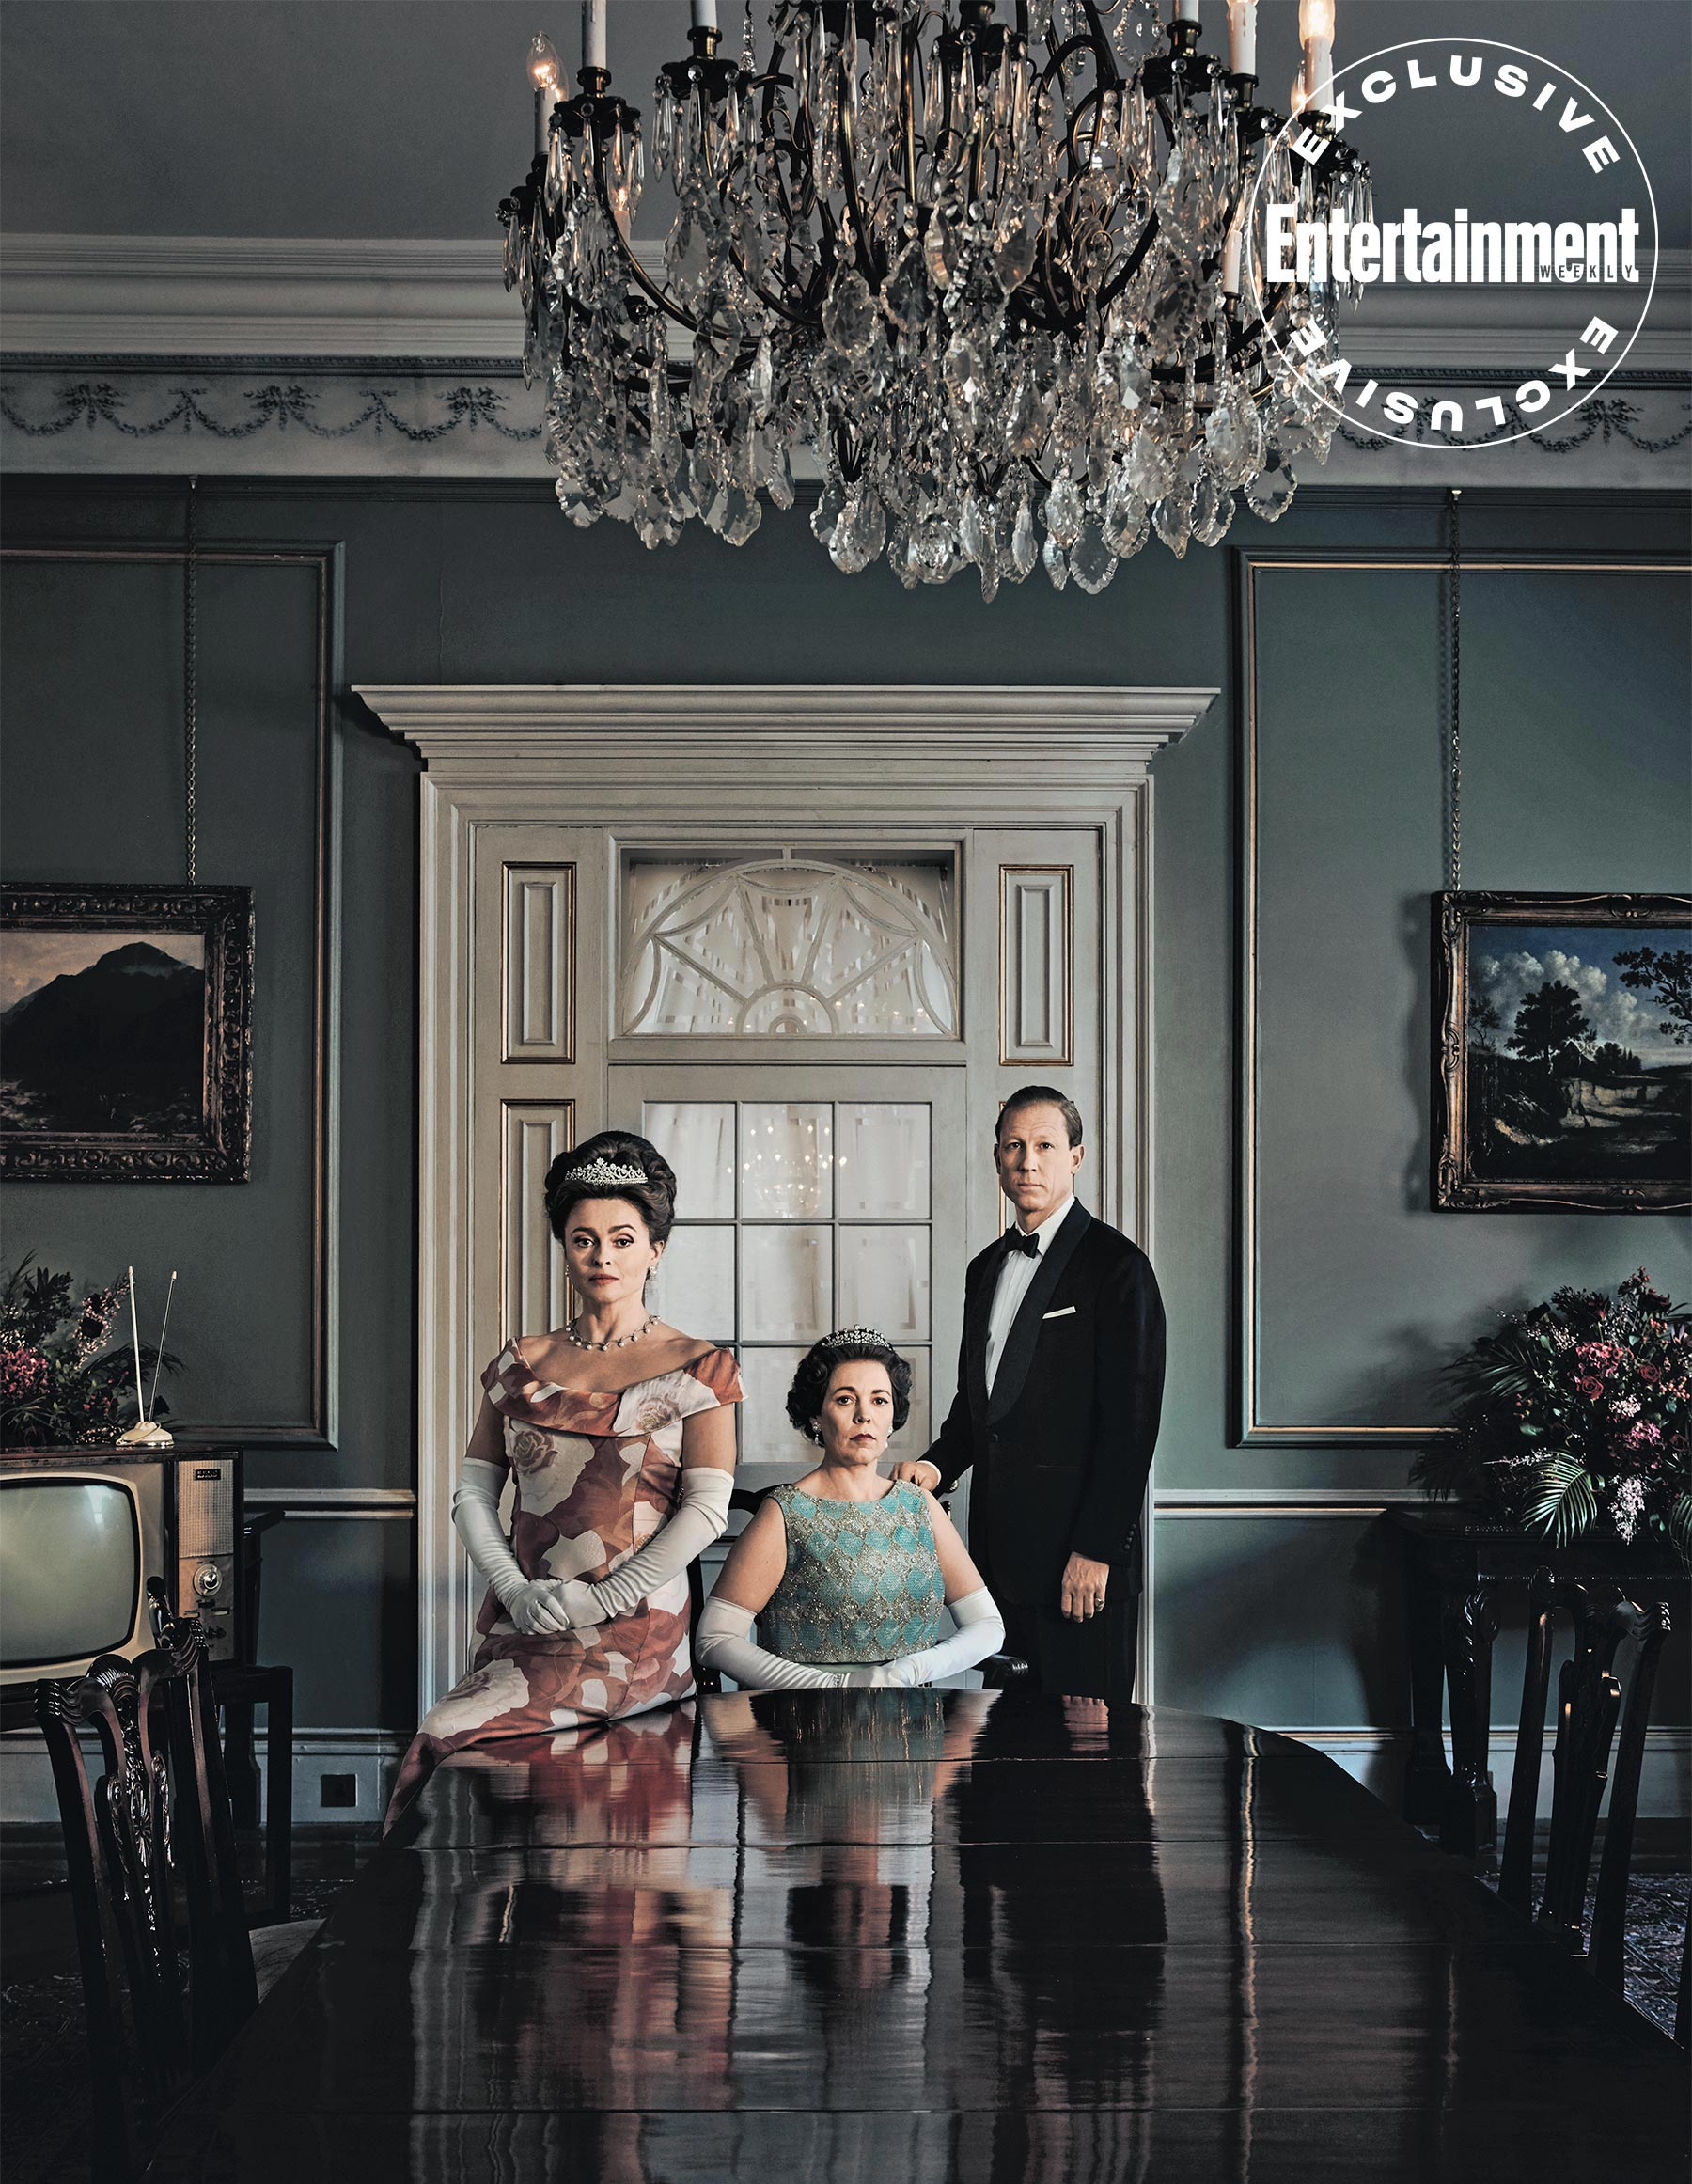 """Helena Bonham Carter as Princess Margaret poses with costars Olivia Colman and Tobias Menzies during a photo shoot for """"The Crown""""."""